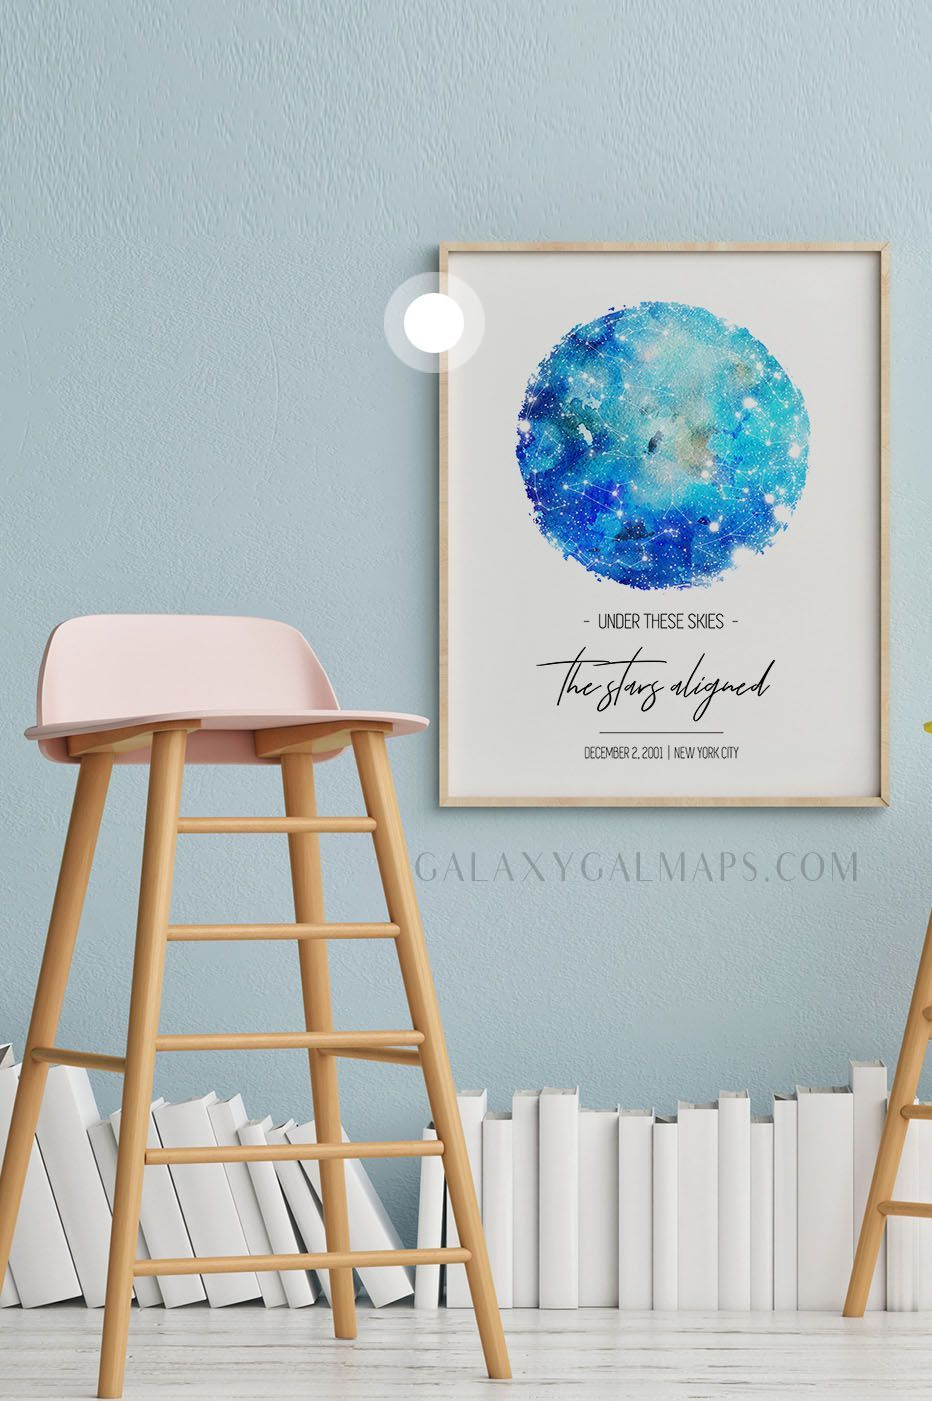 CUSTOM Star Map by Date and Place inspirational print Gift For Dad Poster Extra Large Map Ins CUSTOM Star Map by Date and Place inspirational print Gift For Dad Poster Ex...